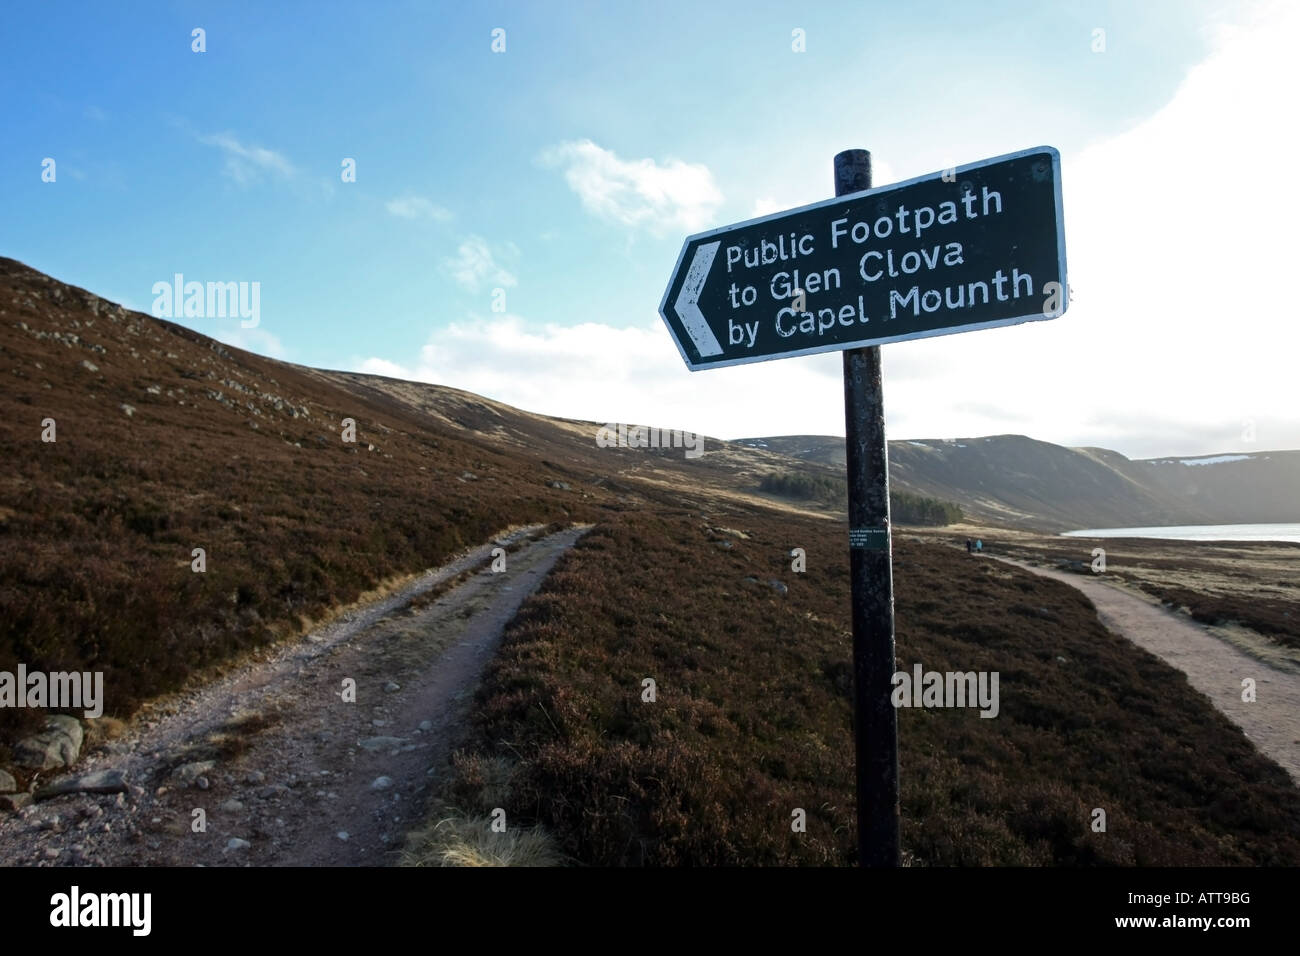 sign pointing to the footpath to glen clova by capel mounth at glen